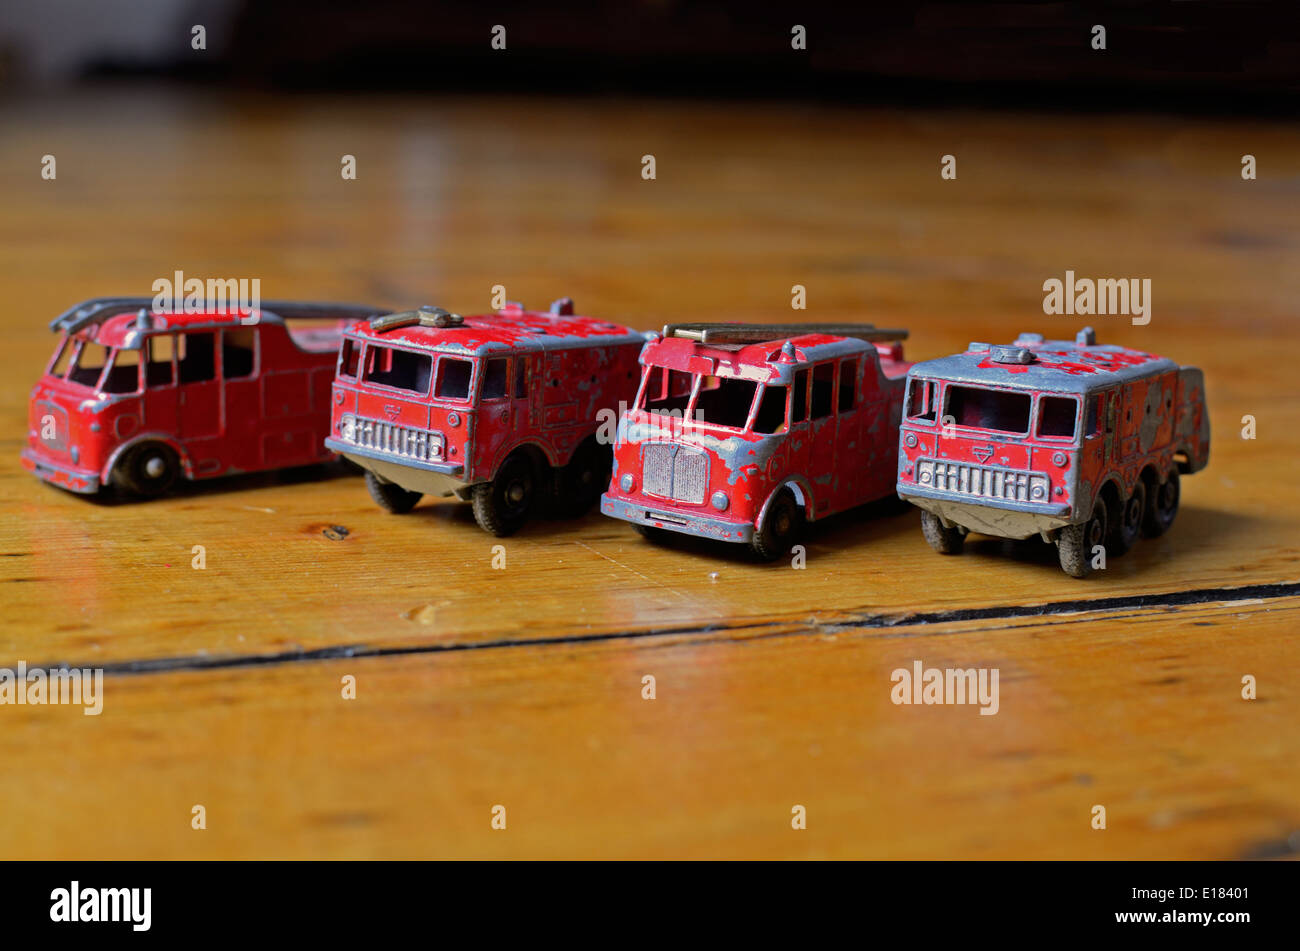 Four Matchbox toy fire engines lined up in a row on a wooden floor Stock Photo